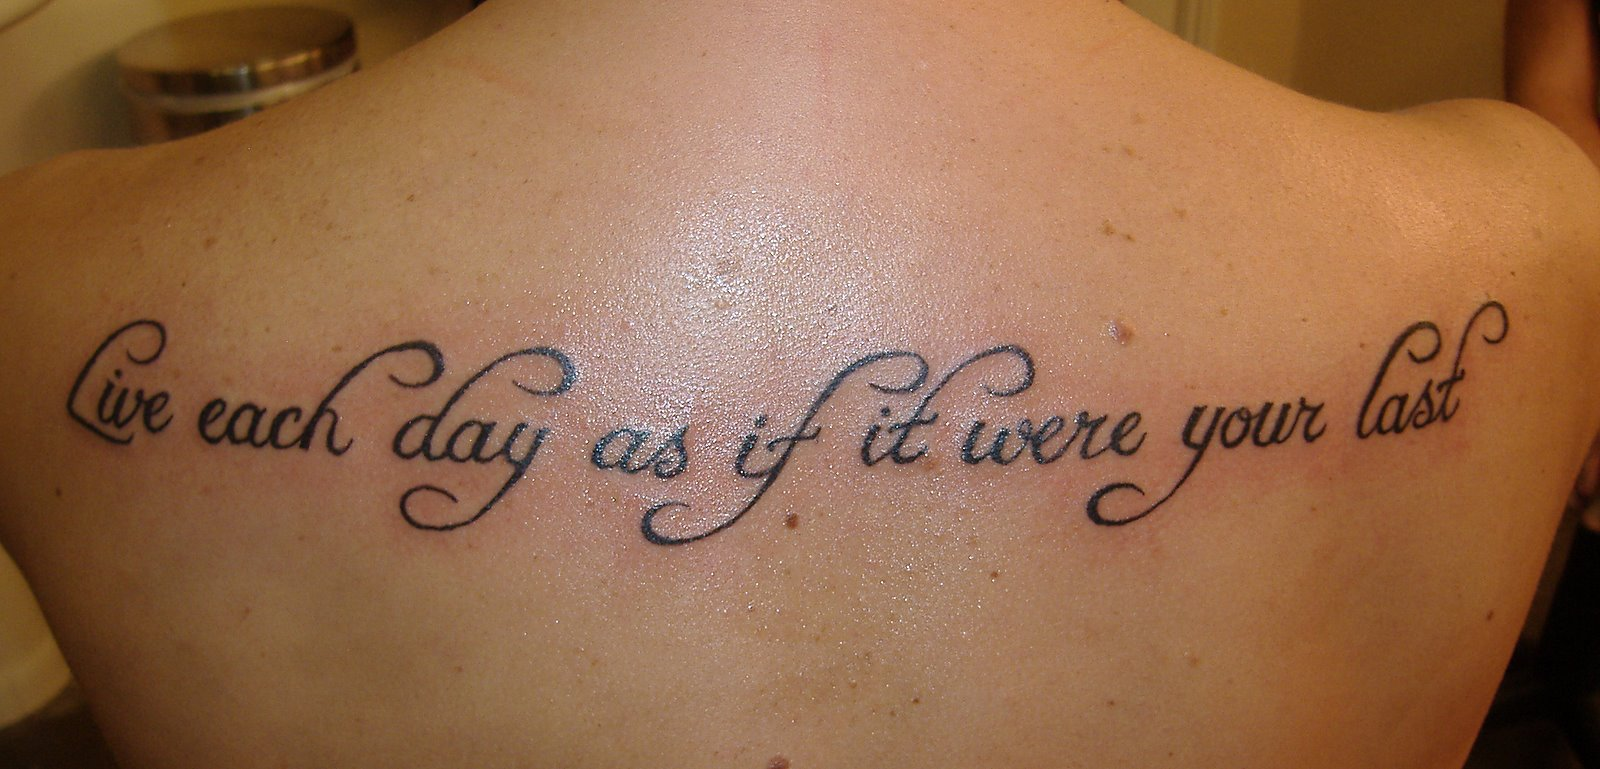 Inspirational Tattoos Designs Ideas And Meaning Tattoos For You